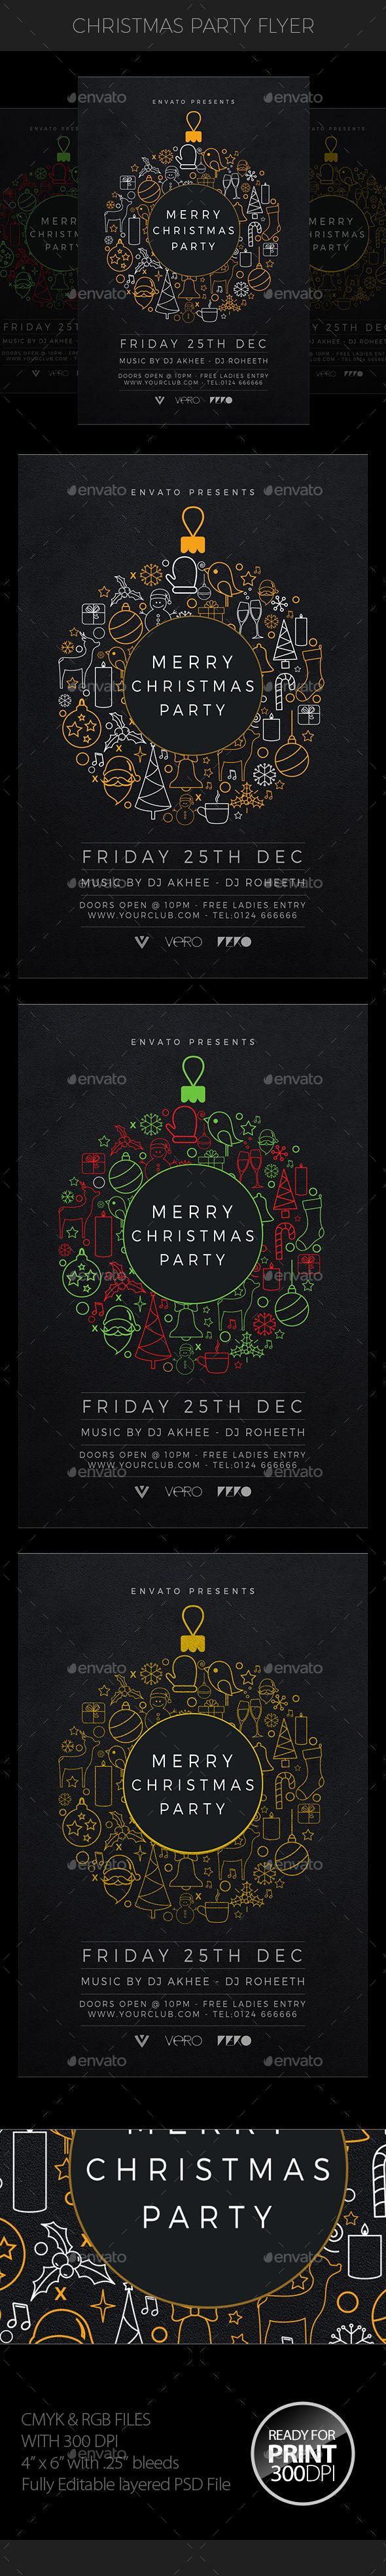 Christmas Party Flyer — Photoshop PSD #party #xmas • Available here → https://graphicriver.net/item/christmas-party-flyer/18801547?ref=pxcr